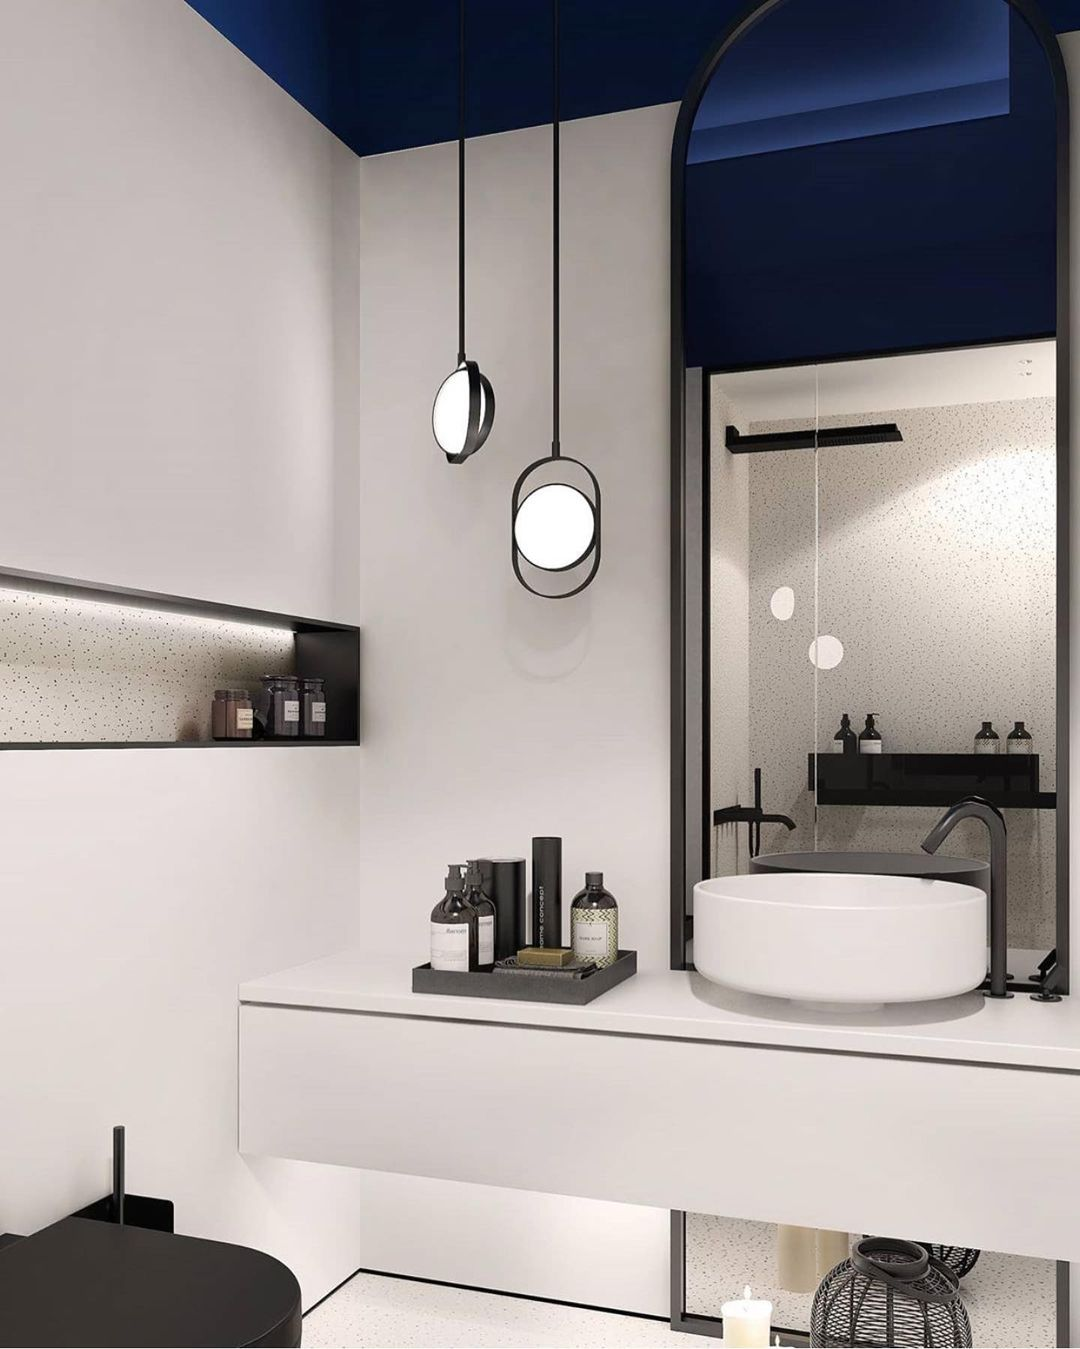 Hanging Mirrors and other mirror designs (4)